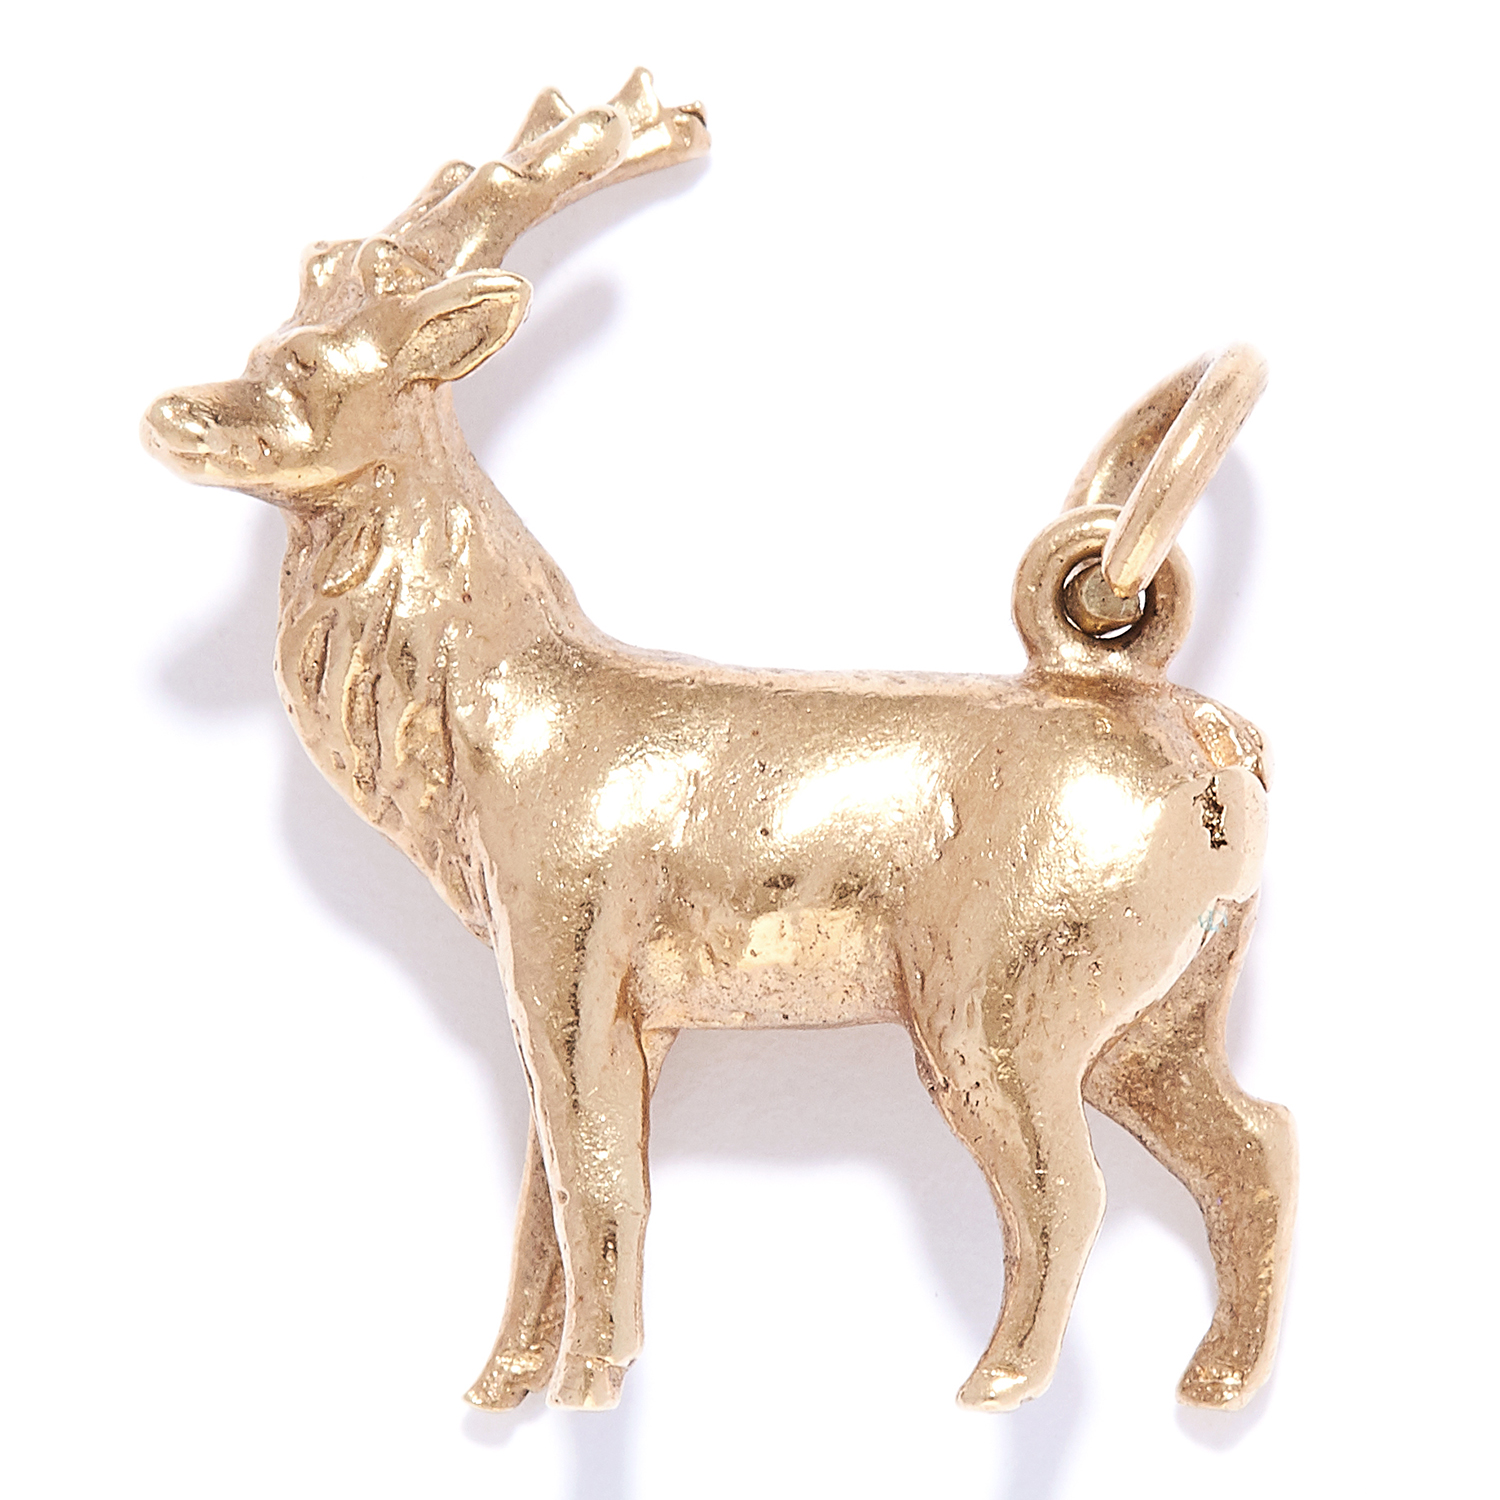 A DEER CHARM / PENDANT in yellow gold, designed as a deer, British hallmarks, 1.7cm, 3.8g.